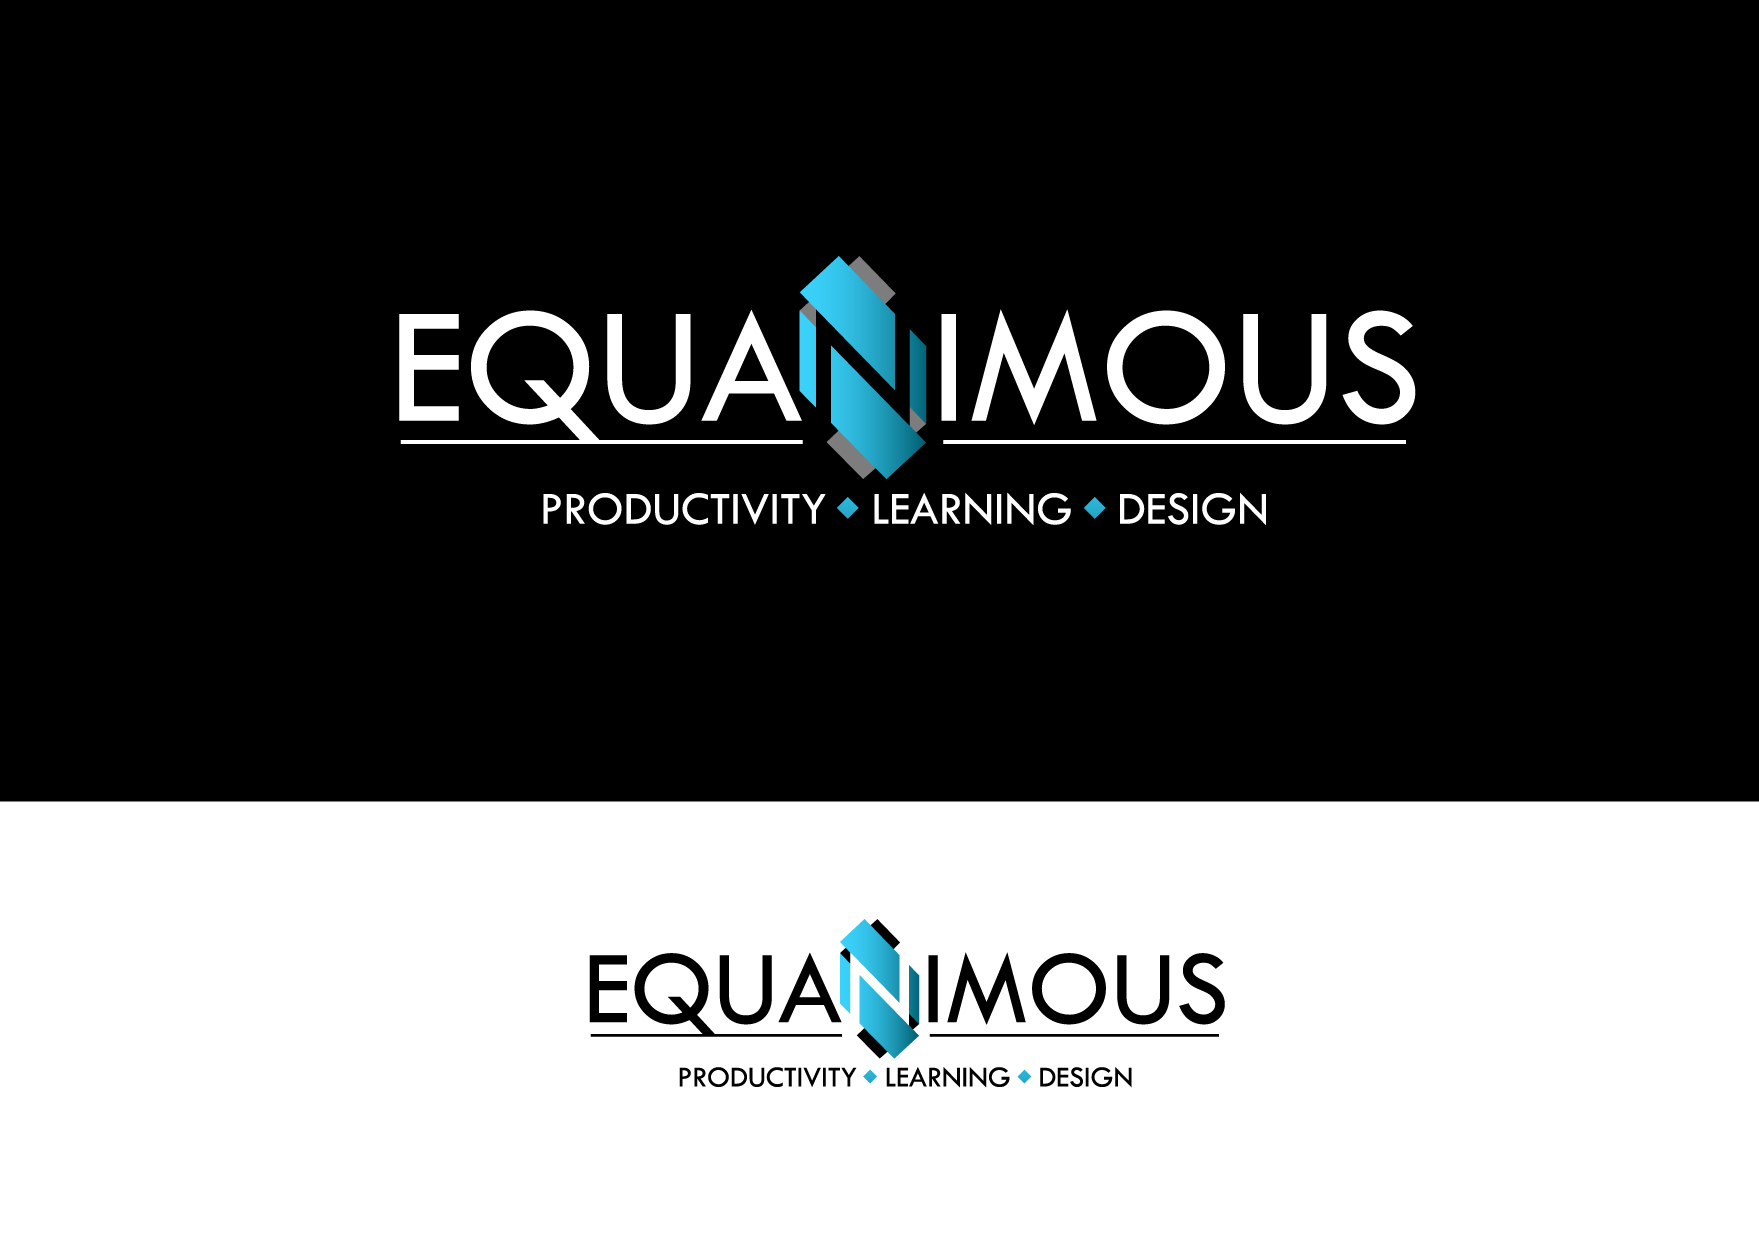 Logo Design by Wilfredo Mendoza - Entry No. 537 in the Logo Design Contest Logo Design : EQUANIMOUS : Productivity | Learning | Design.